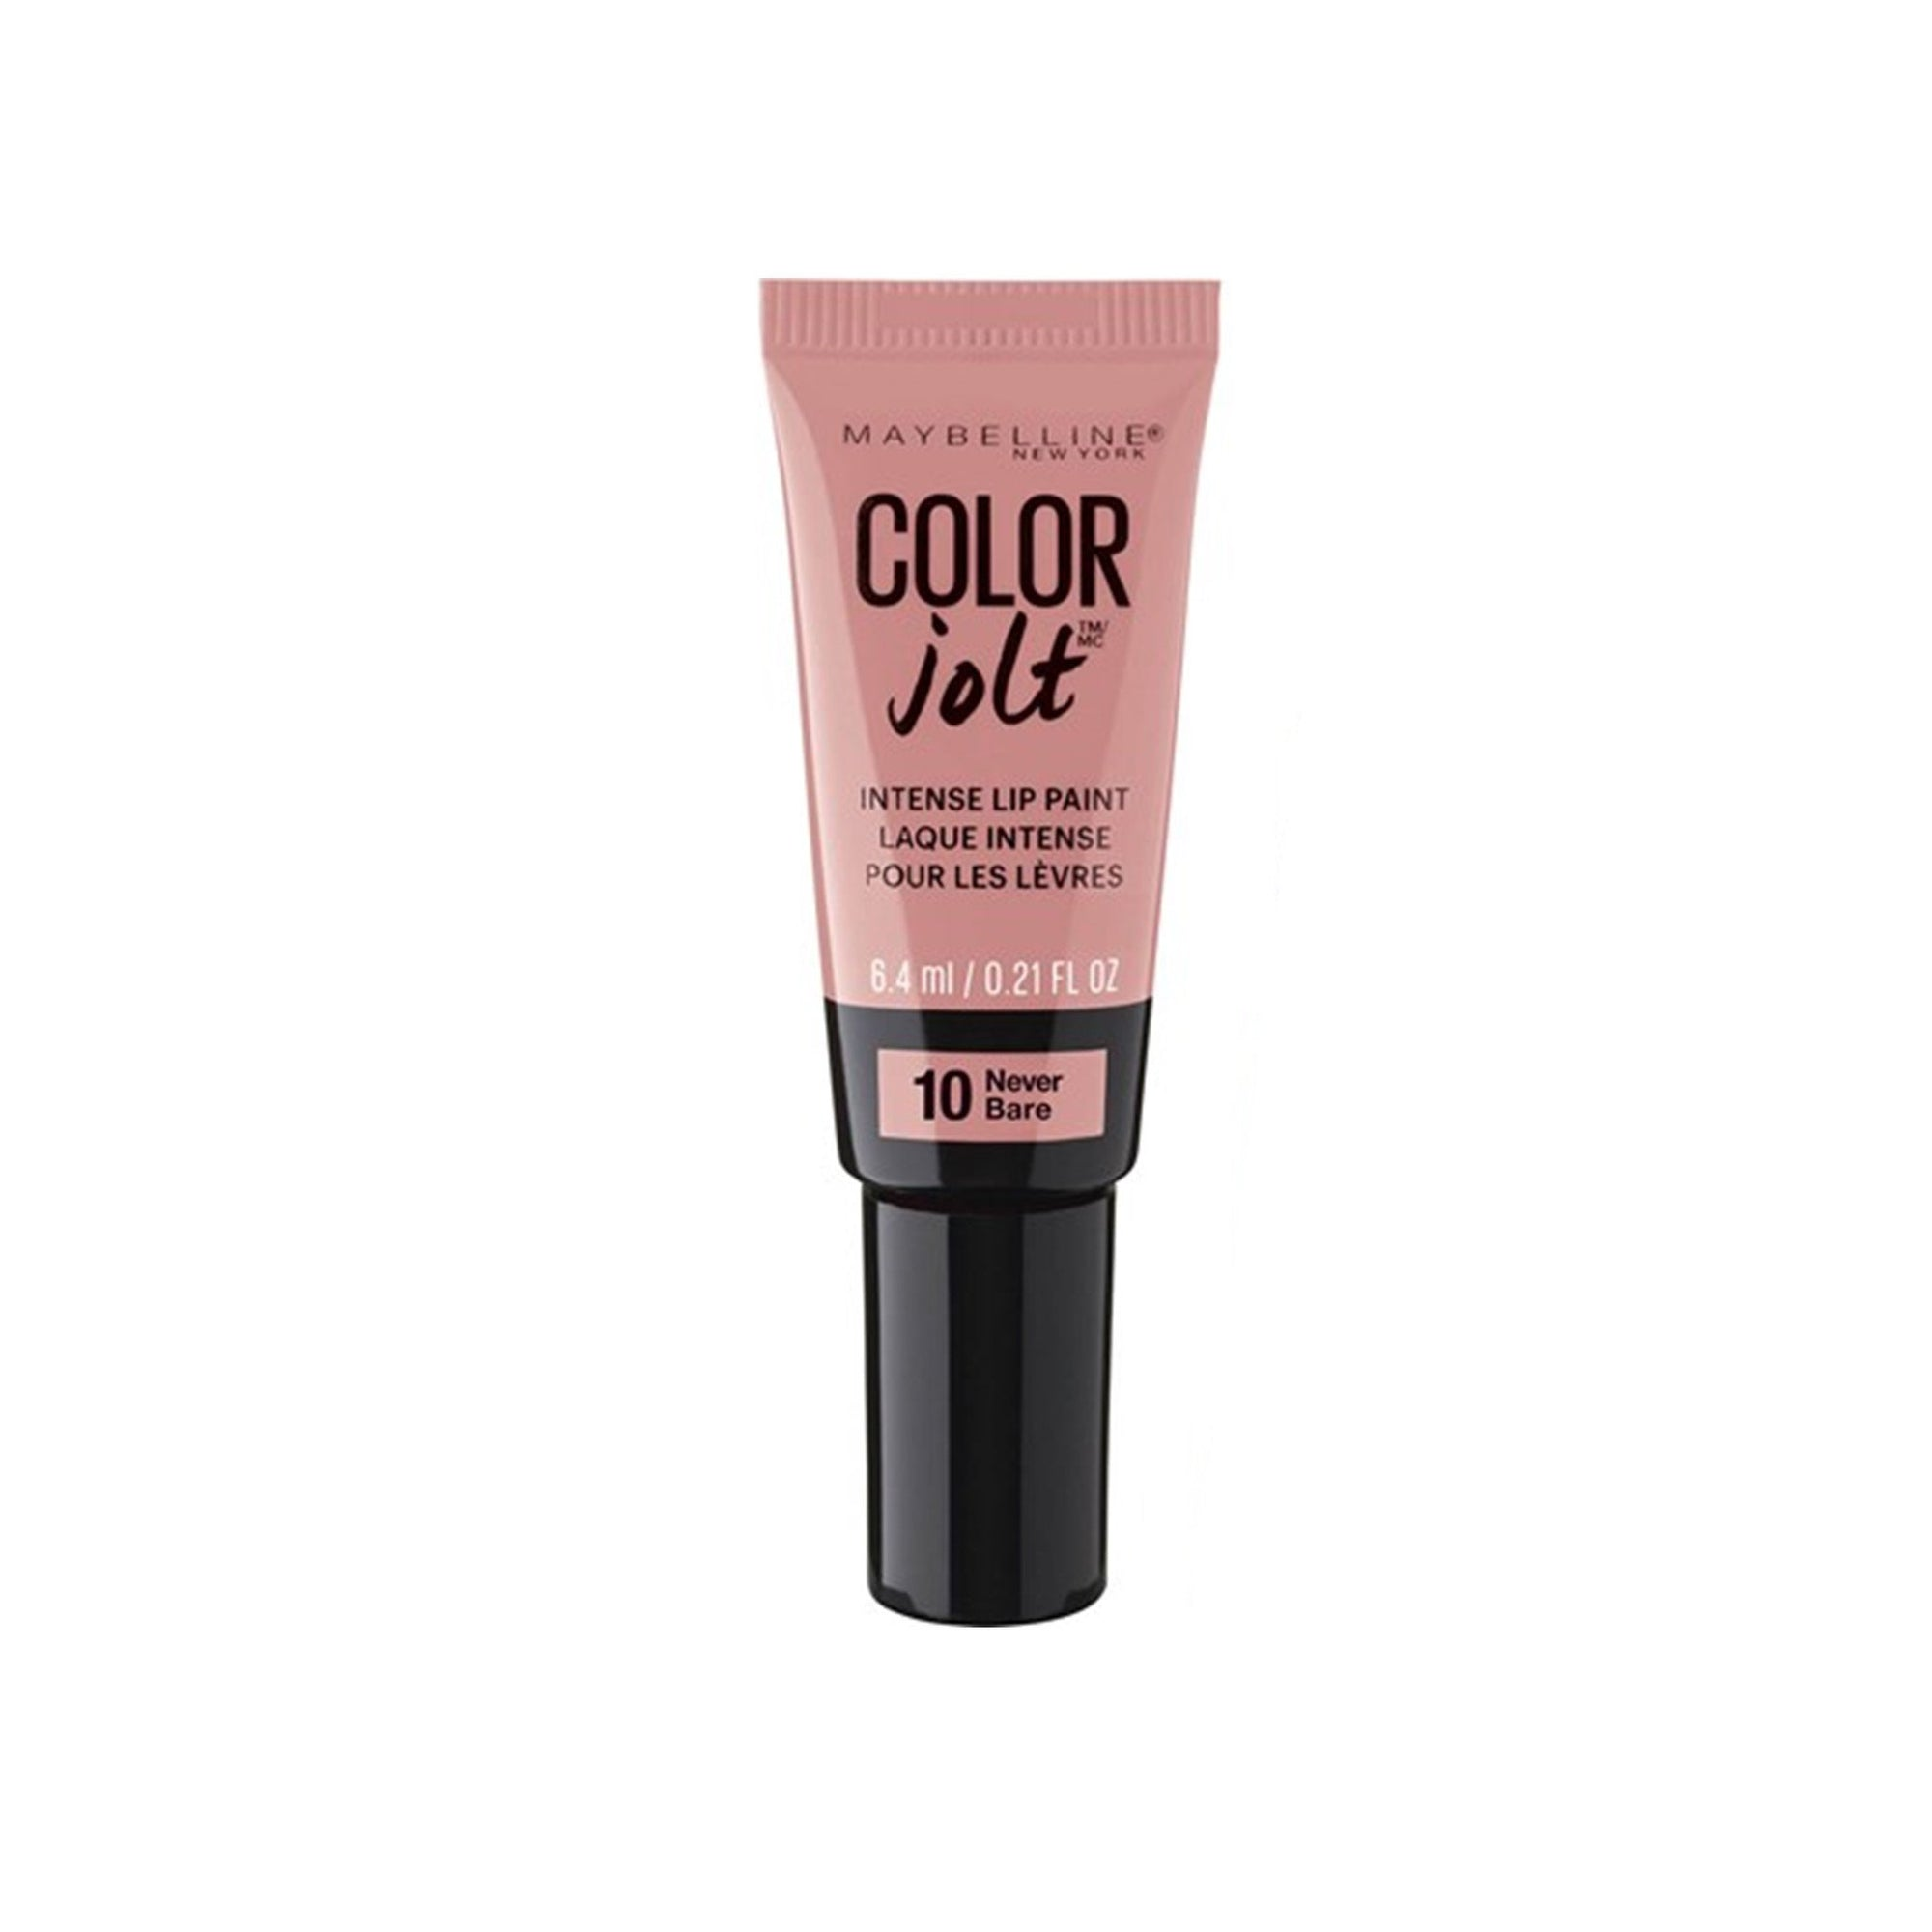 Maybelline Color Jolt Lip Paint